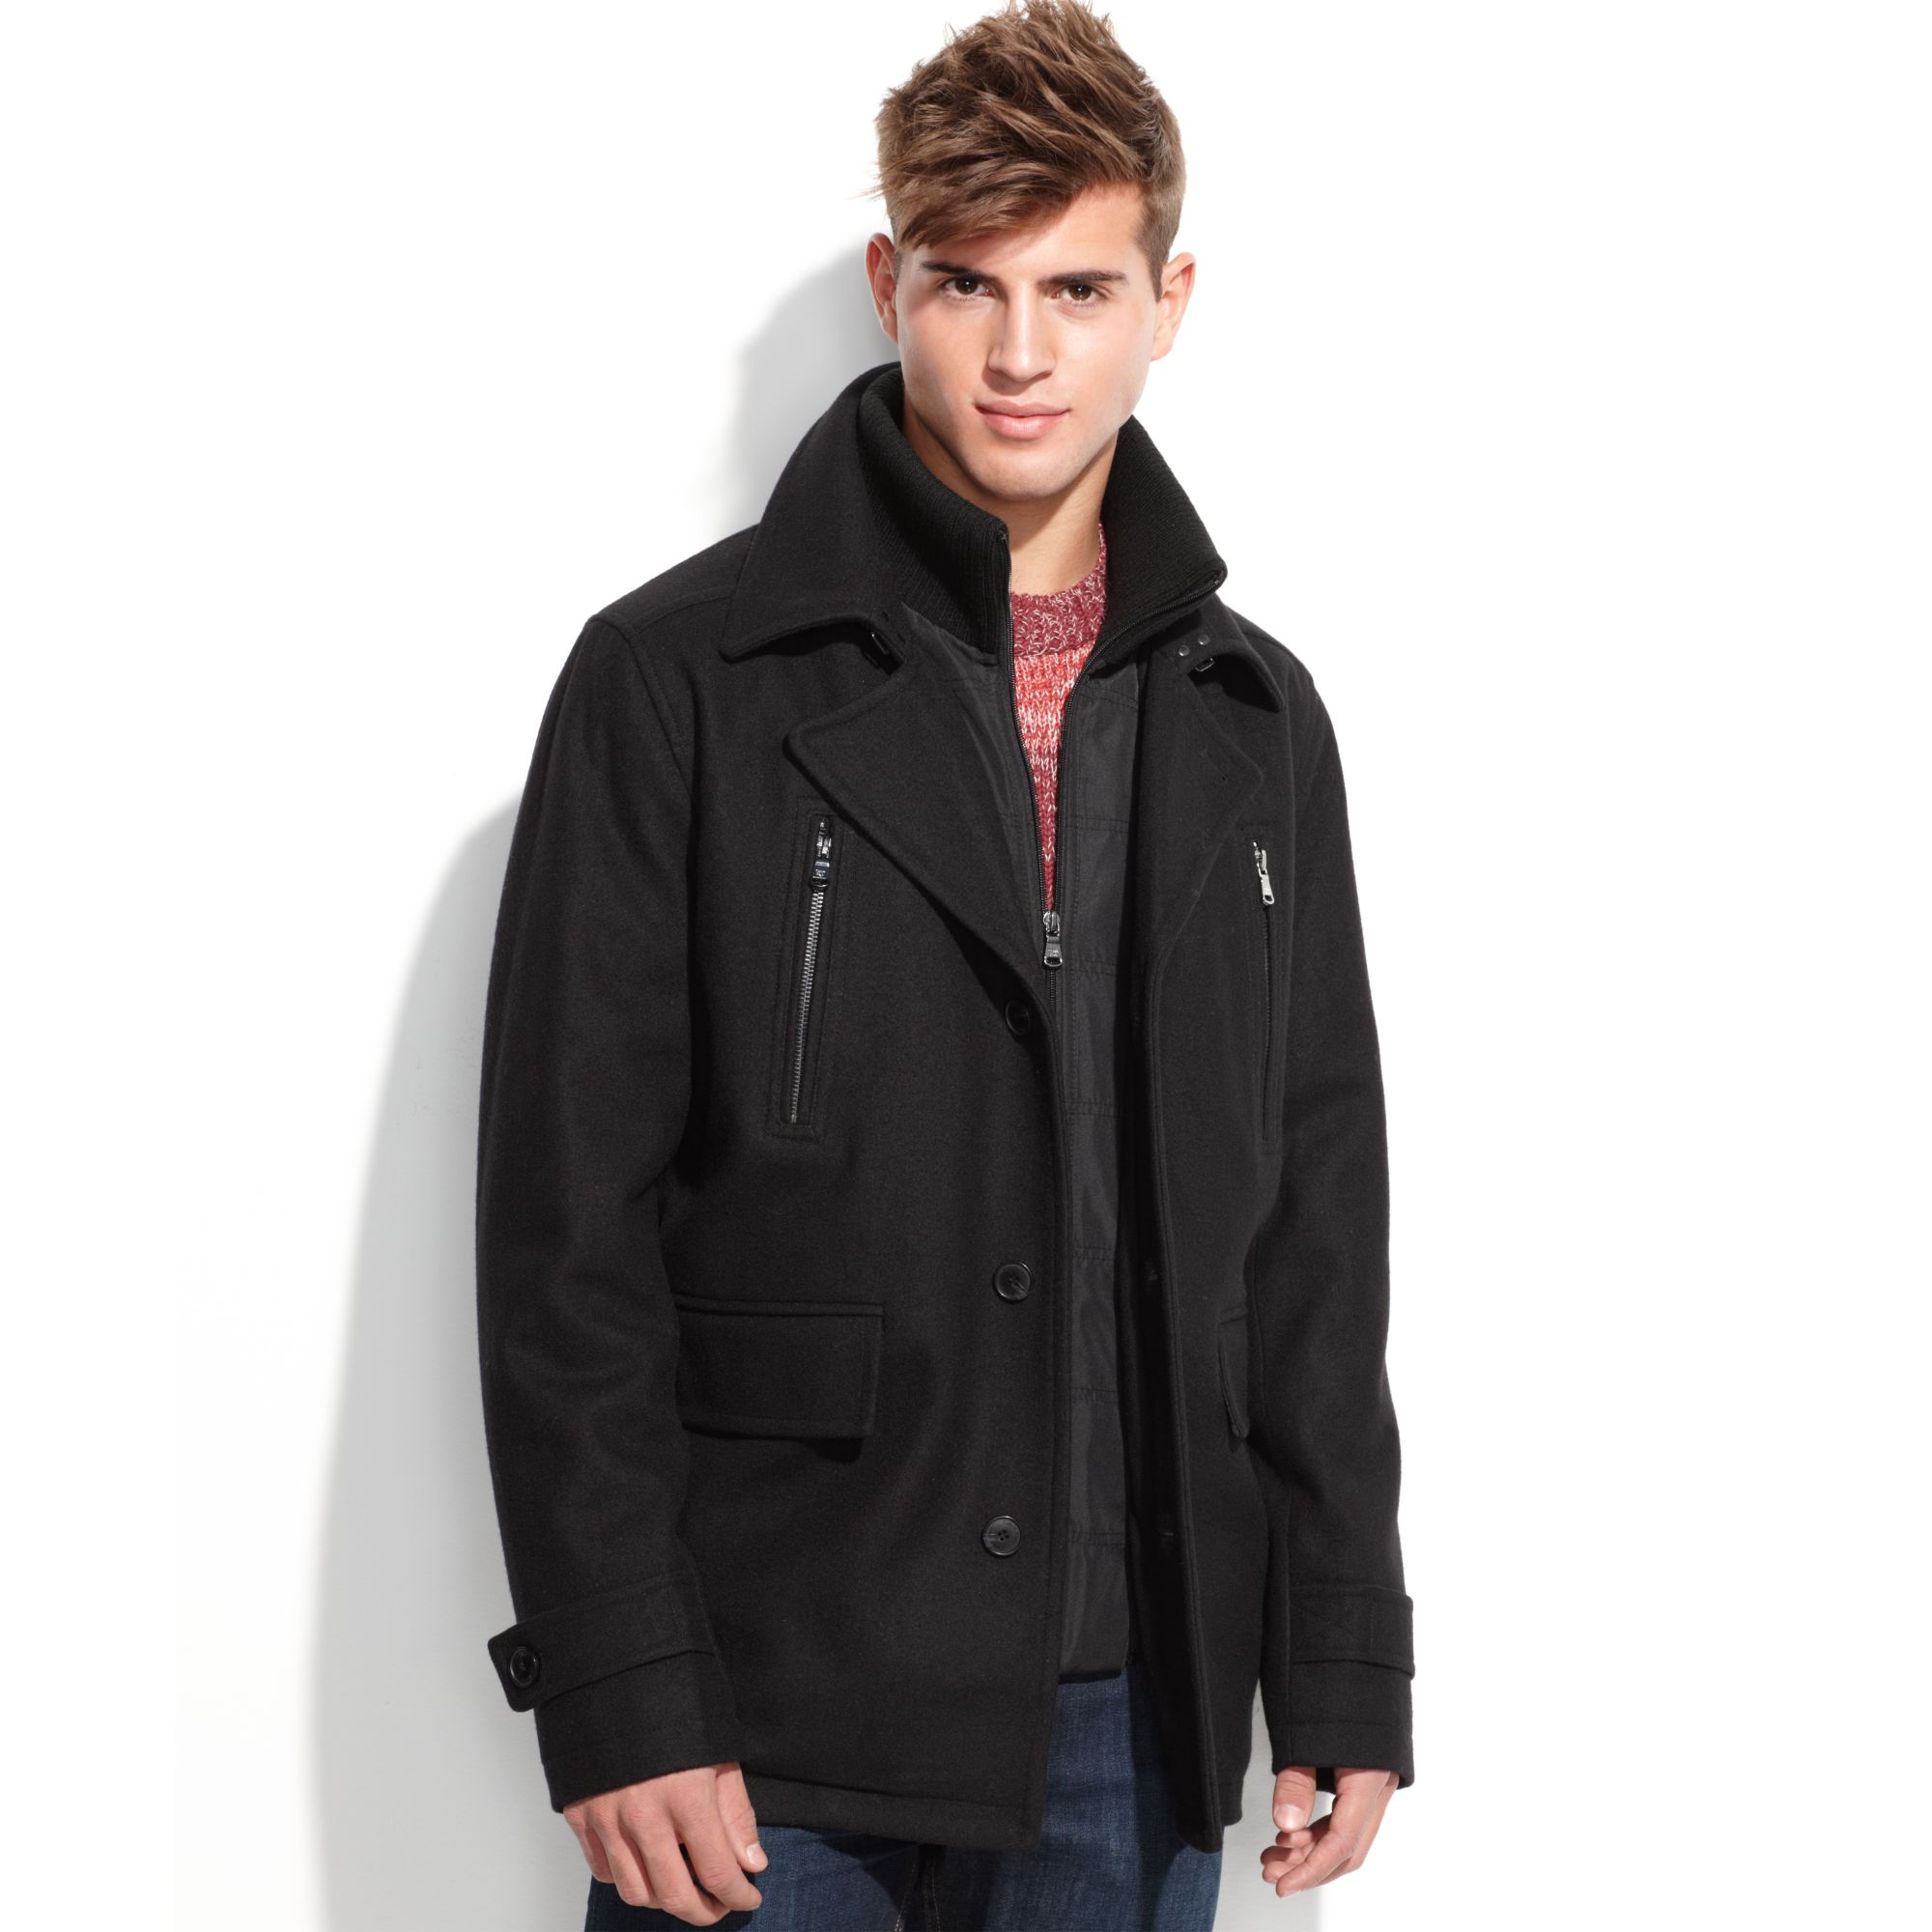 Zipper Pea Coat Mens - Tradingbasis